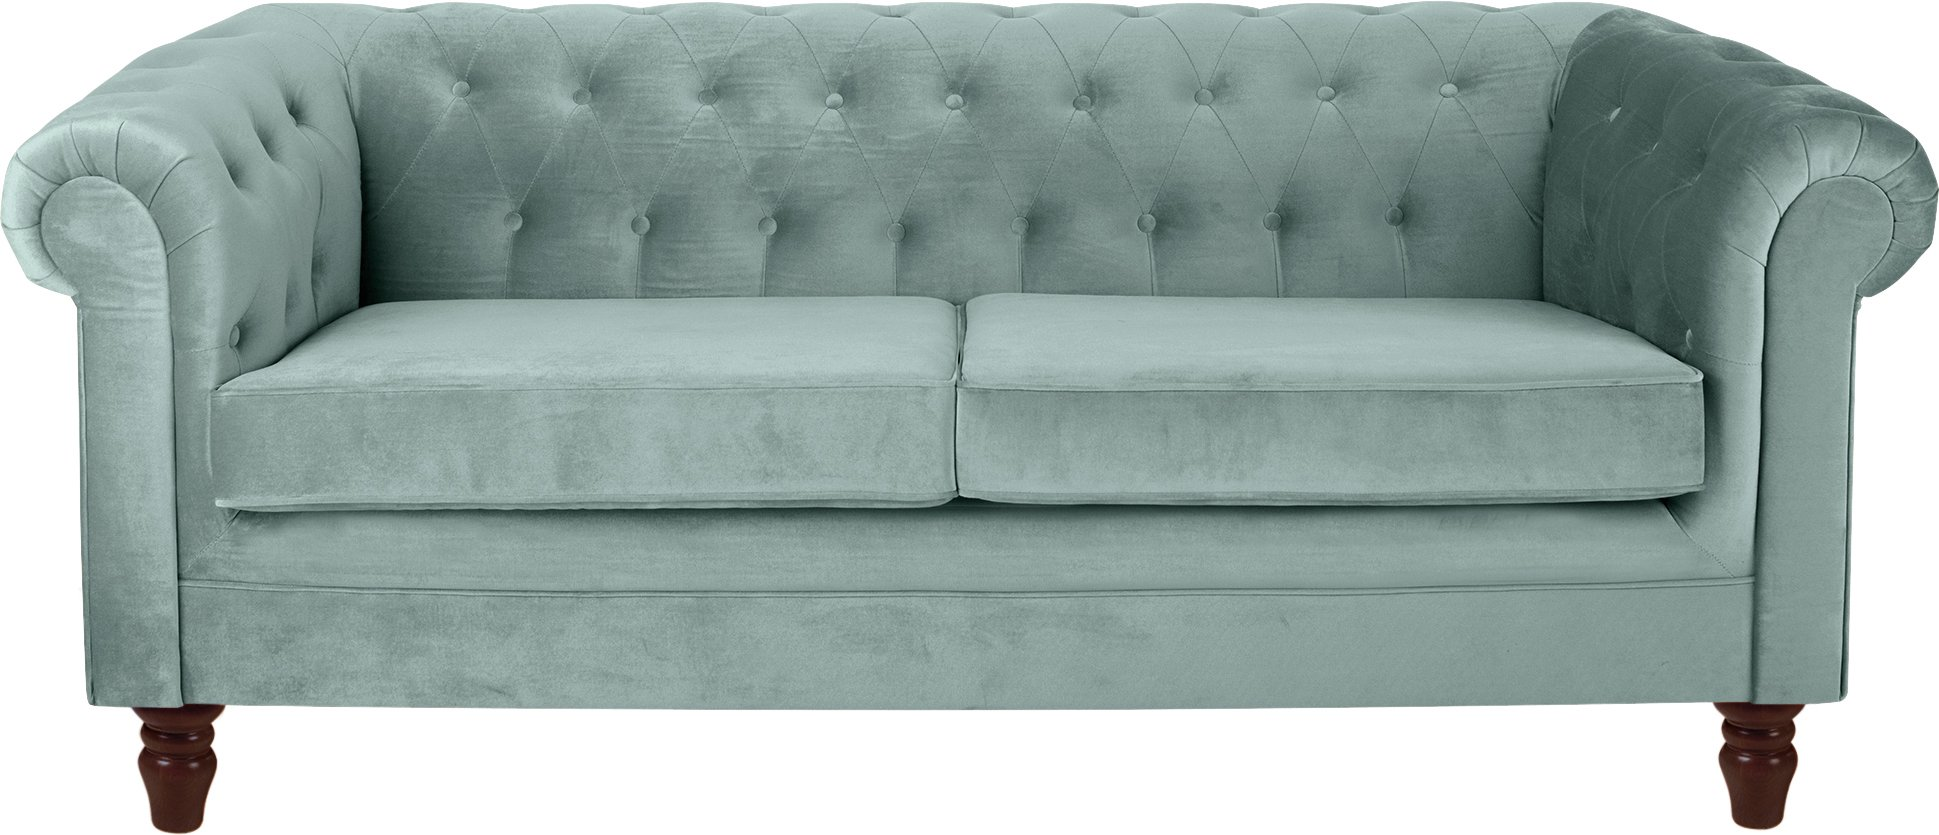 argos ava fabric sofa review flip toddler heart of house chesterfield 3 seater duck